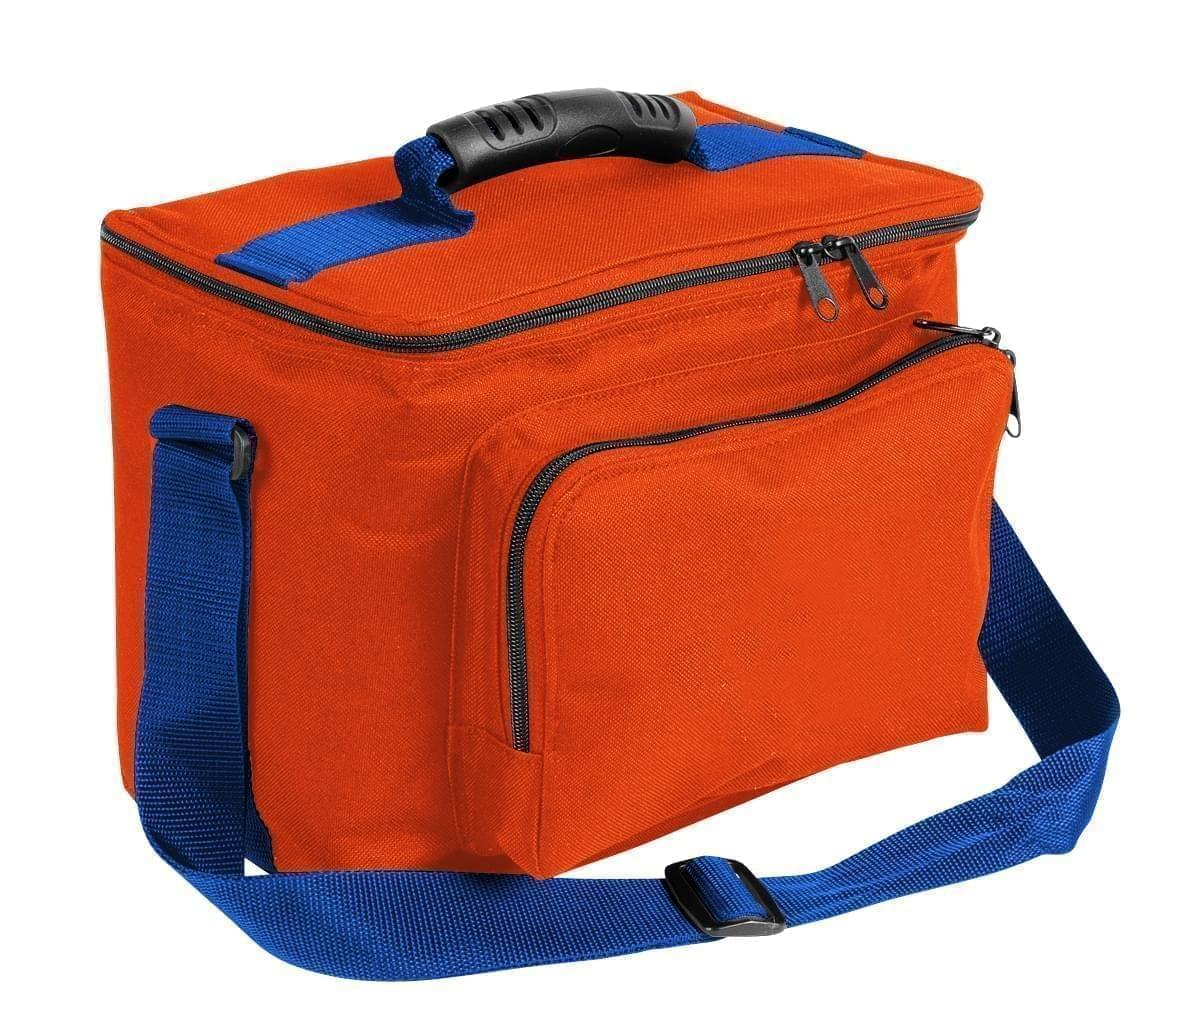 USA Made Nylon Poly Lunch Coolers, Orange-Royal Blue, 11001161-AX3